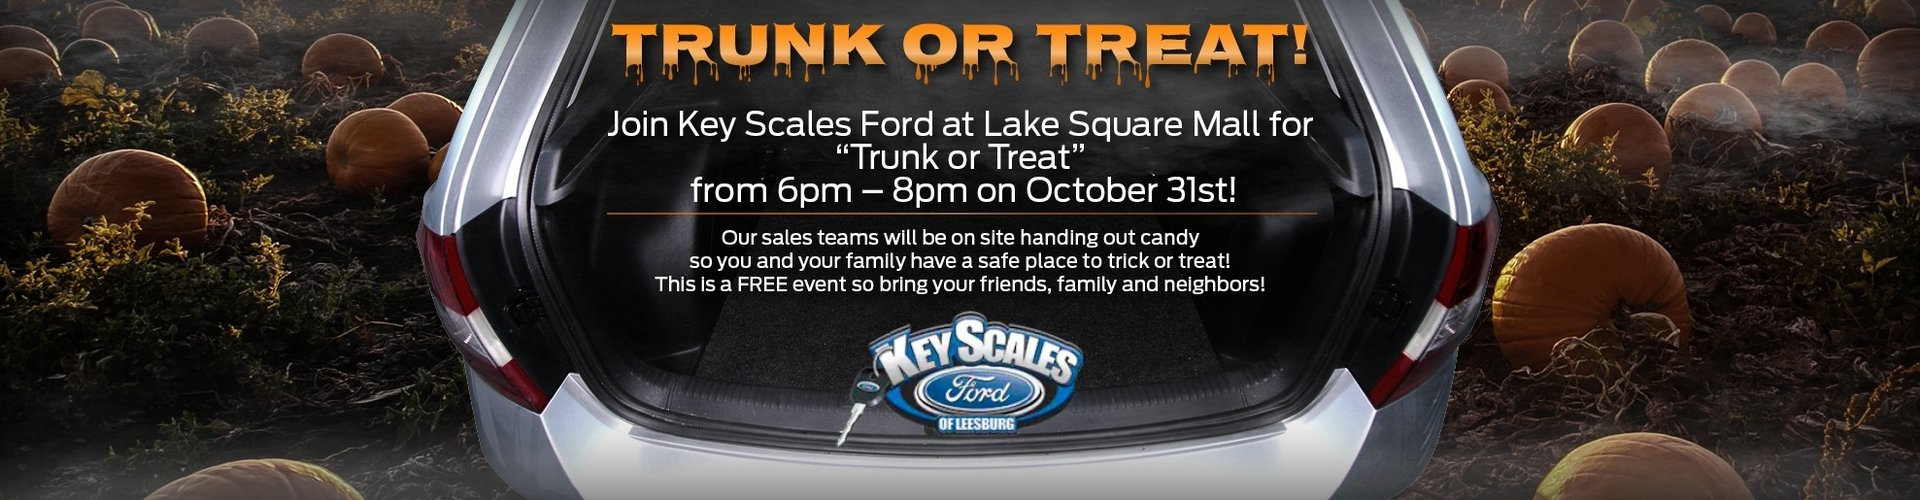 Trunk or Treat banner with Key Scales Ford